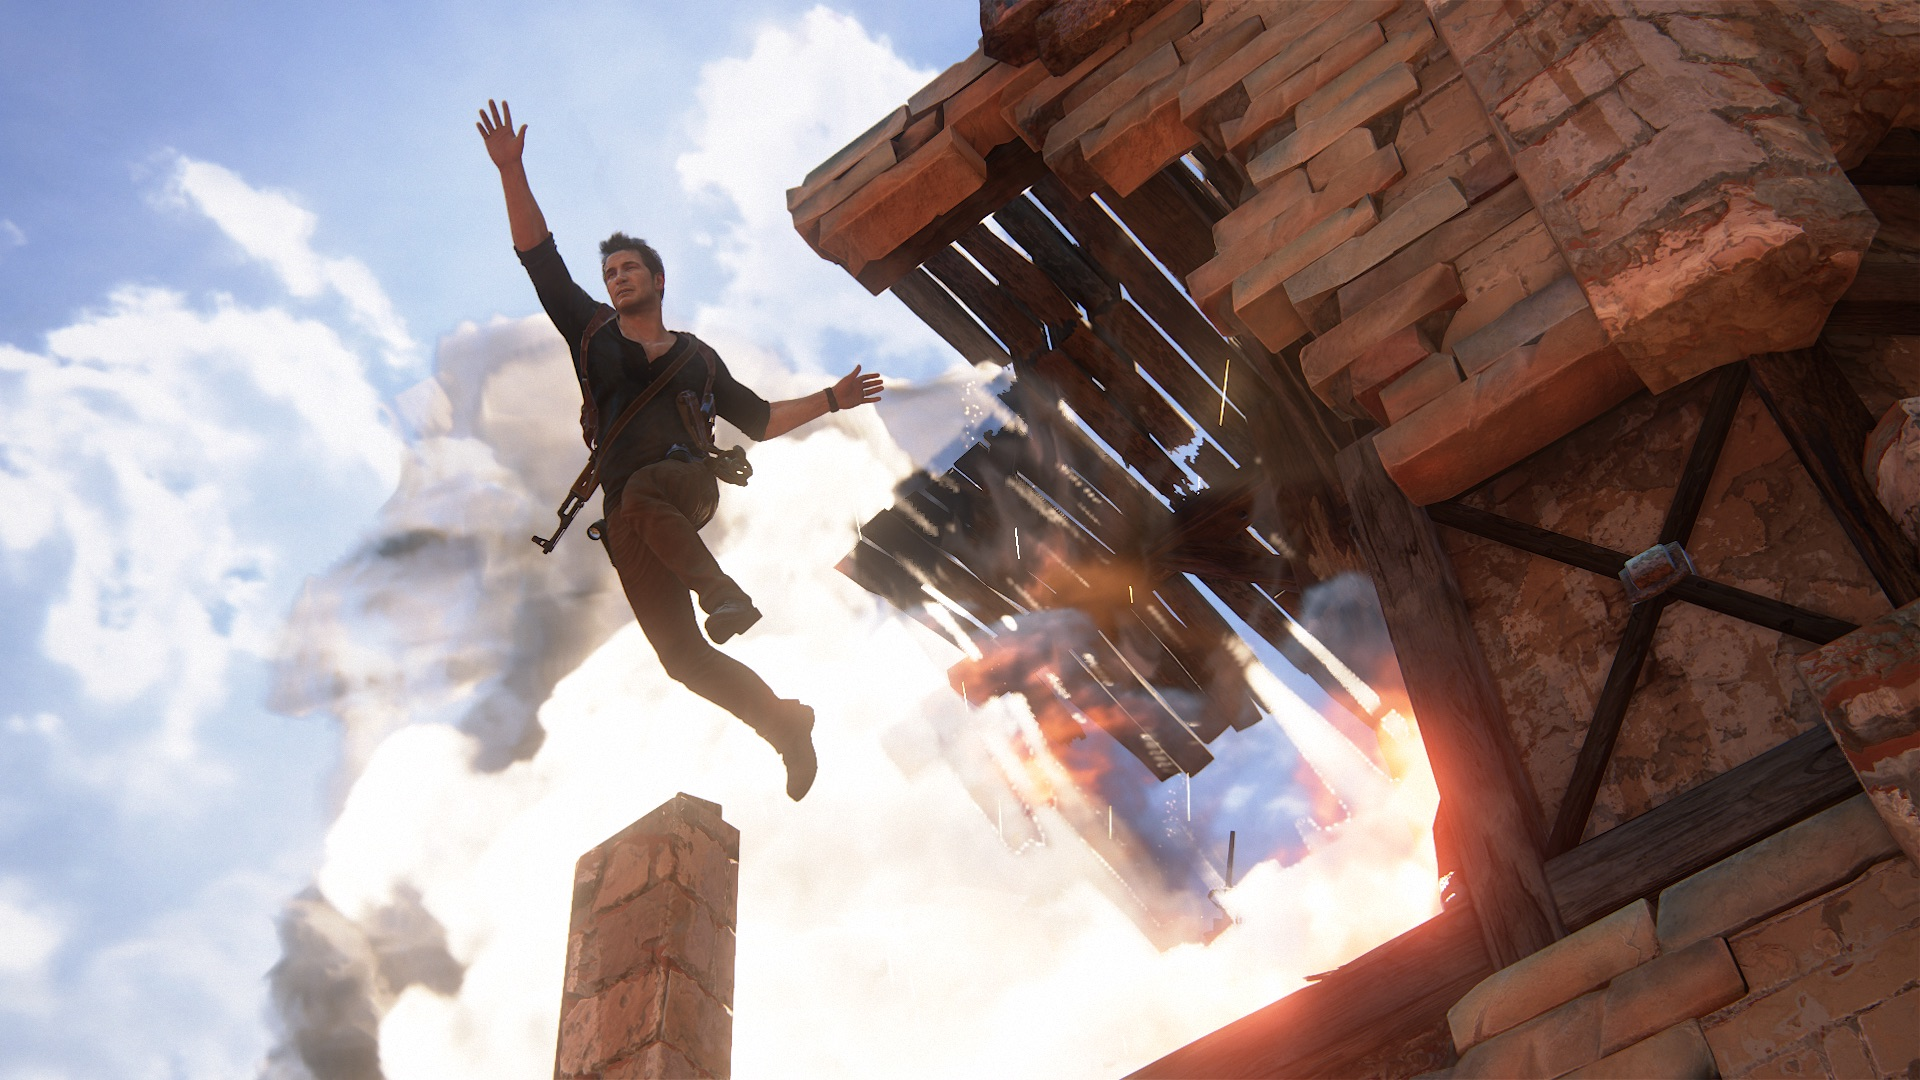 uncharted release date trailer watch gameplay preview